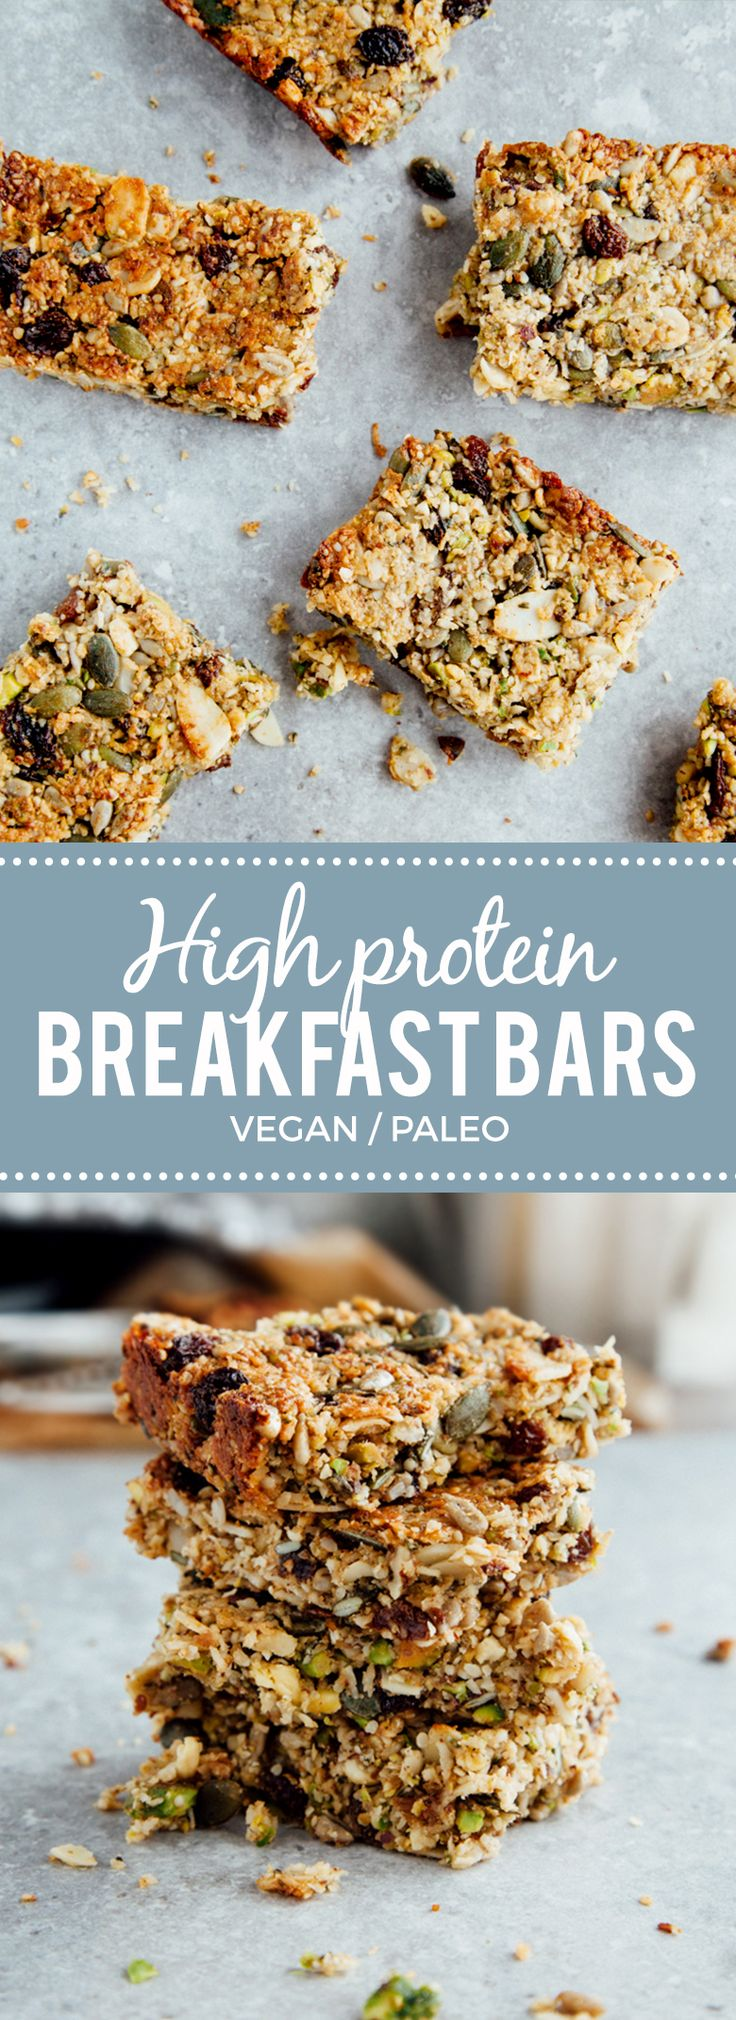 Protein Breakfast Bars (Vegan + Paleo) sub craisins for raisins and I'm in